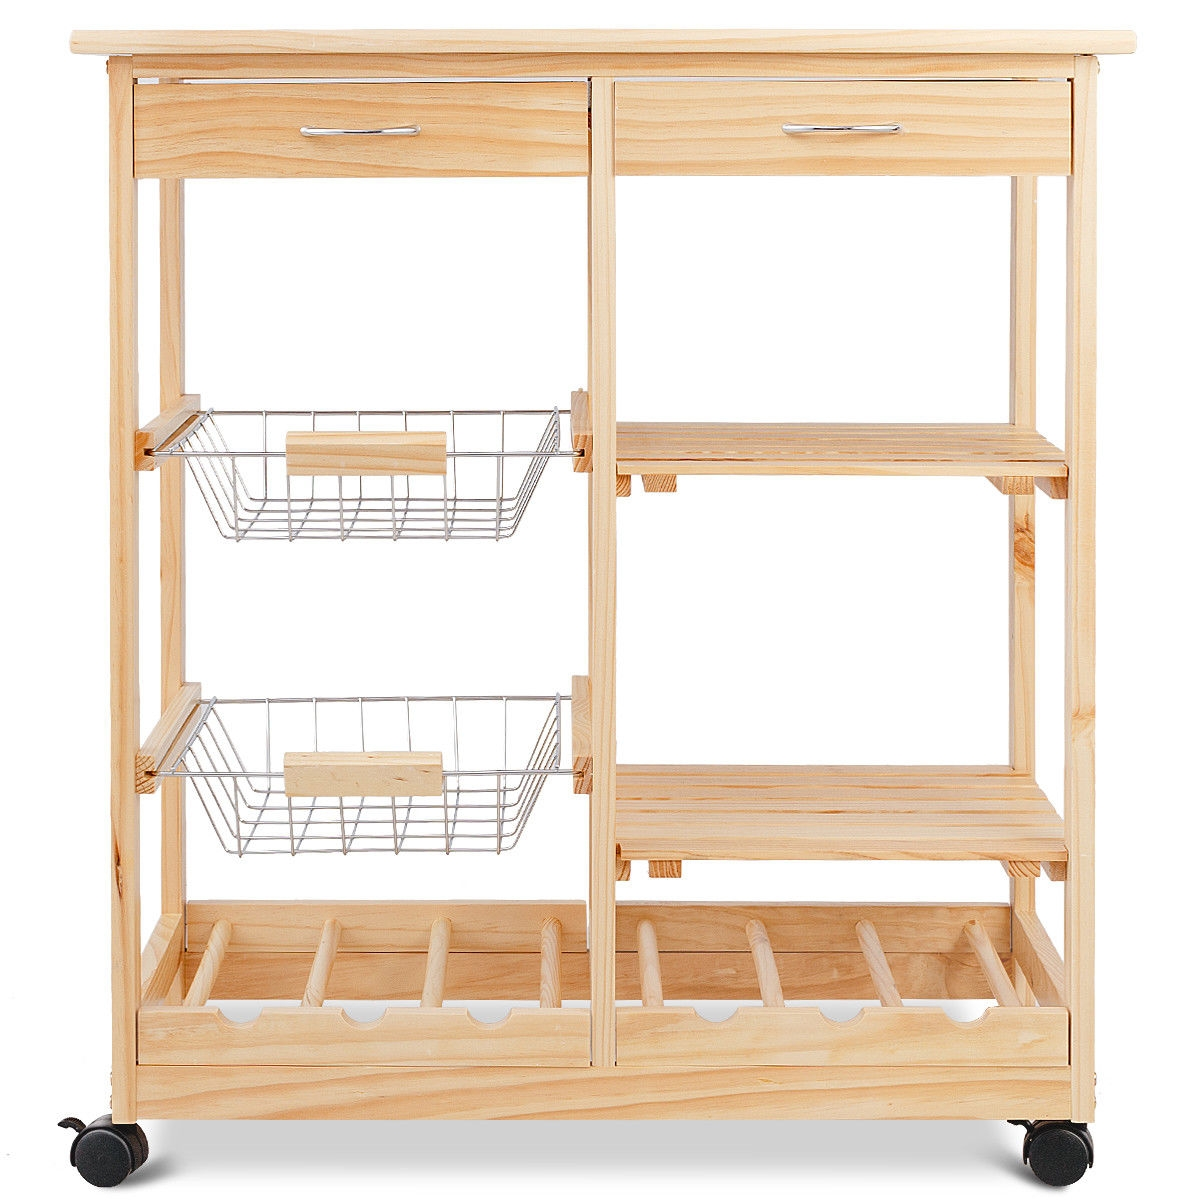 Rolling Wood Trolley Cart with Storage Drawers Baskets